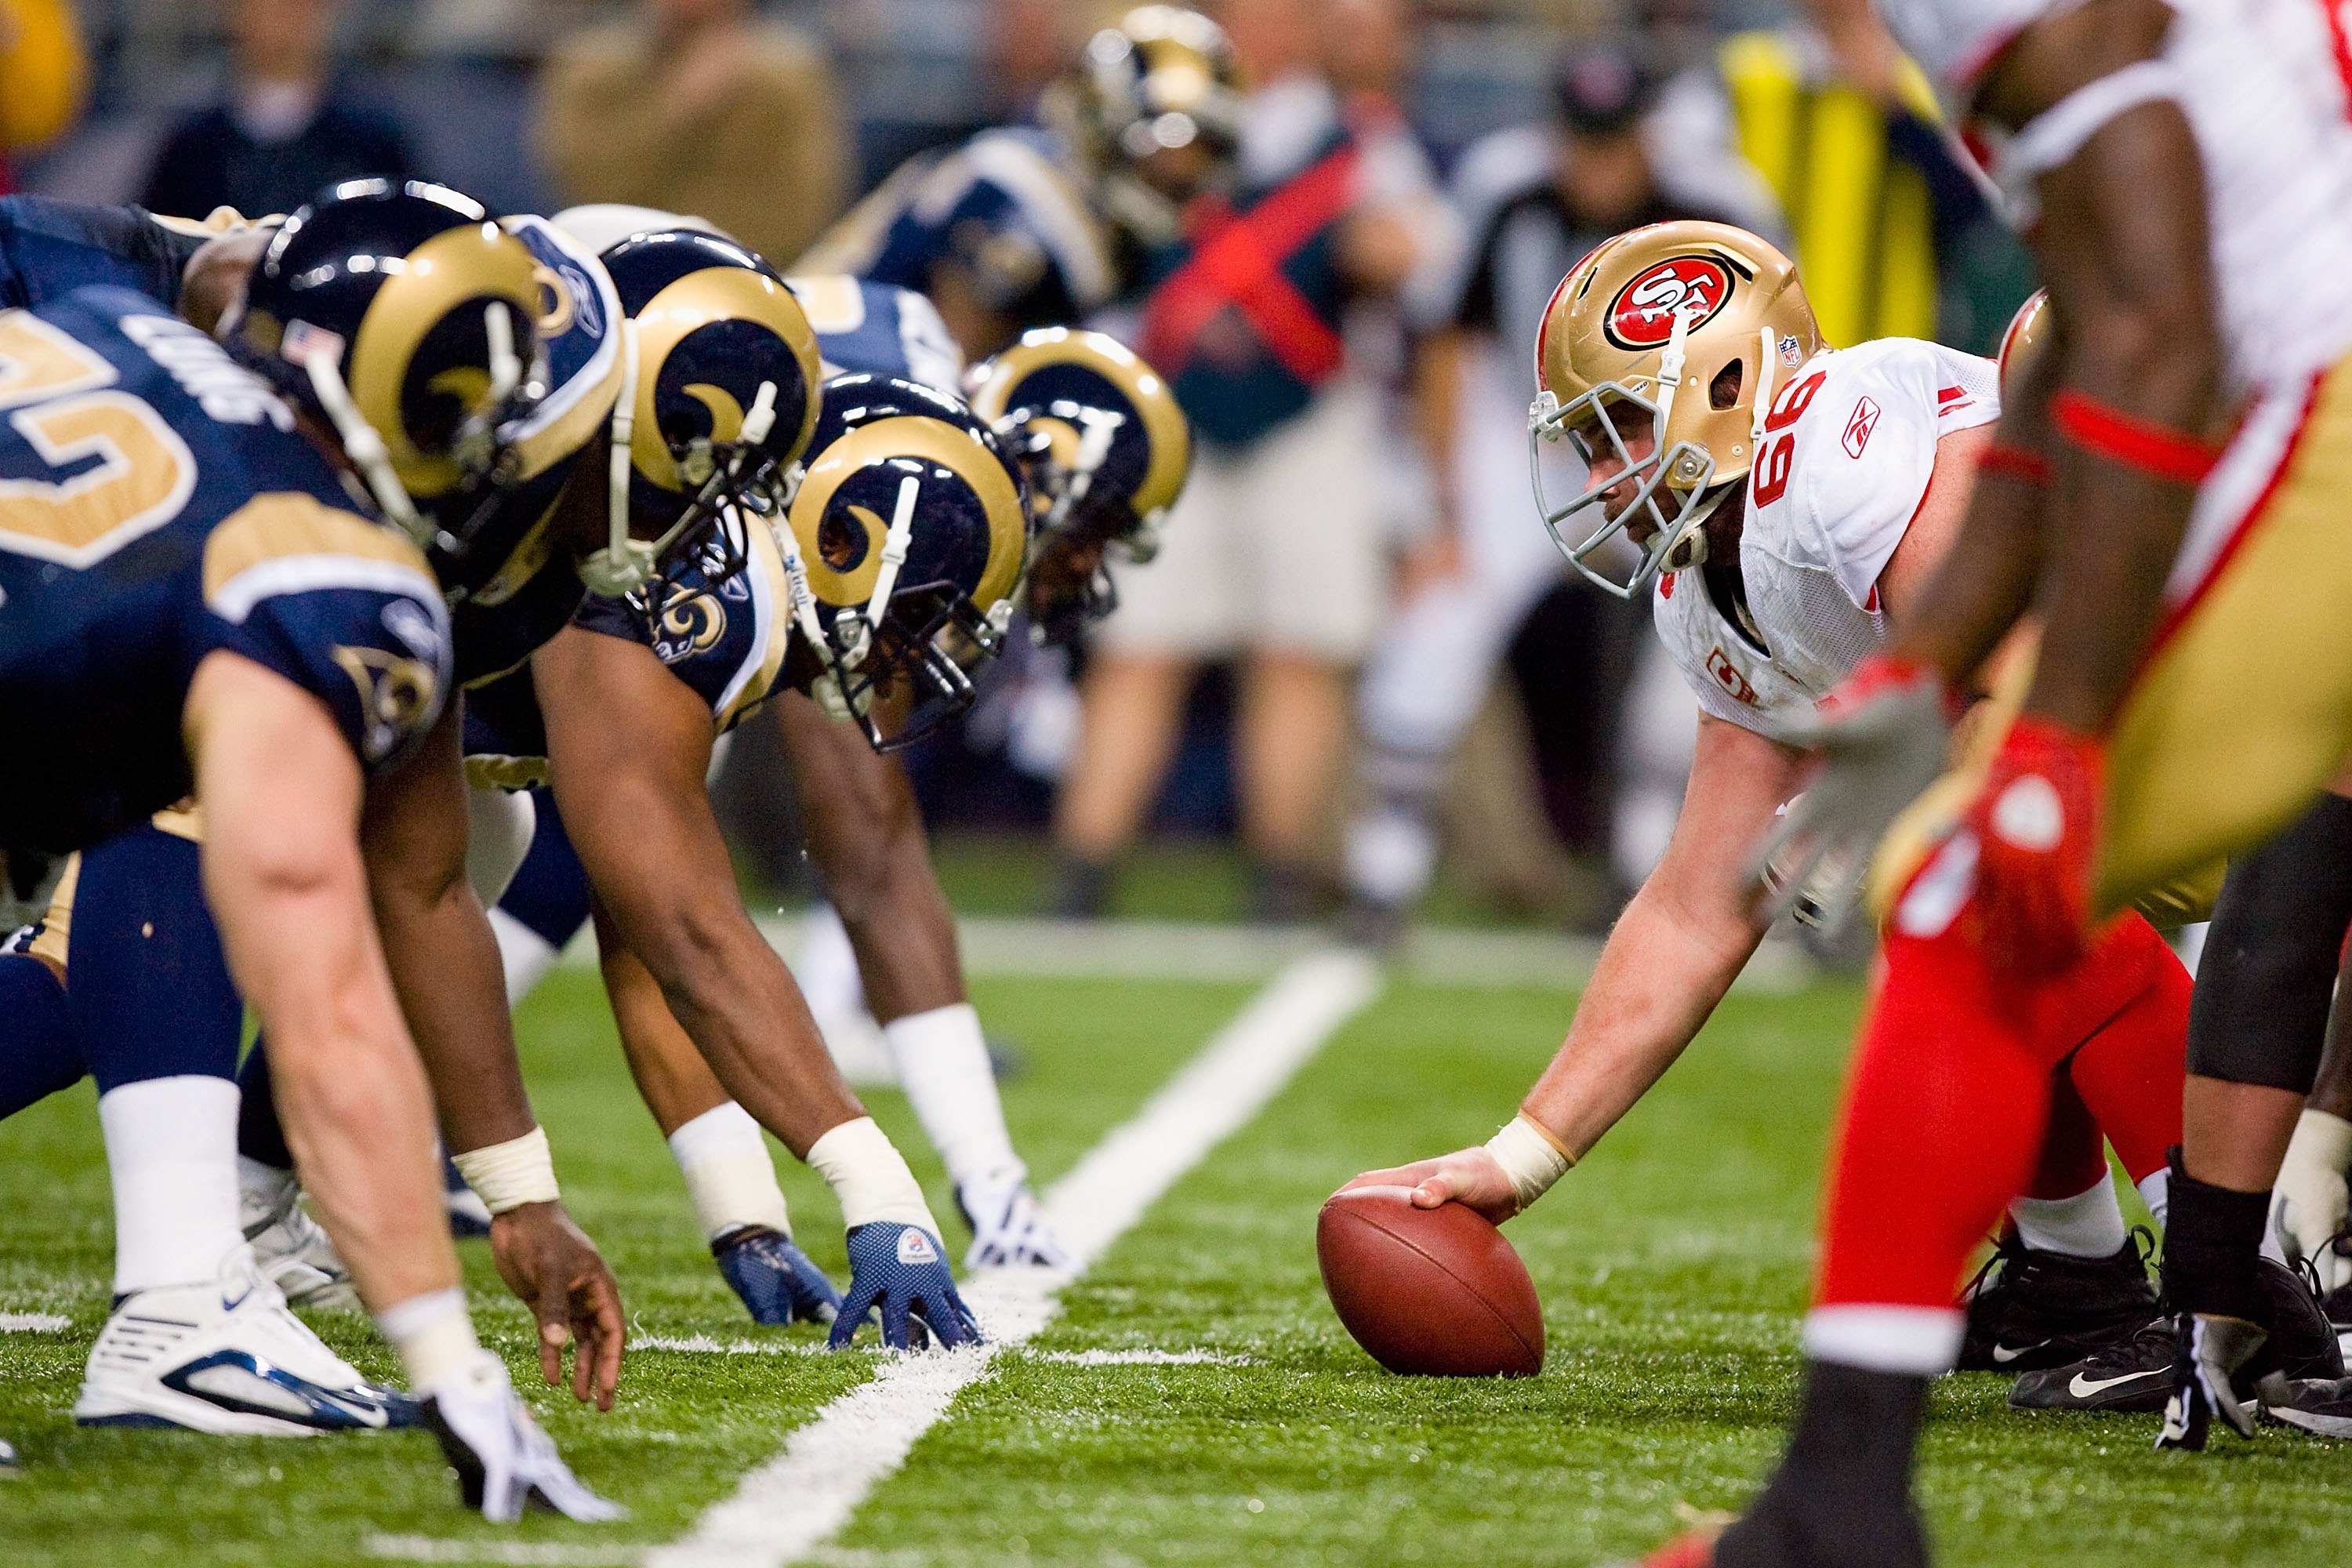 ST. LOUIS - JANUARY 3:  Center Eric Heitmann #66 of the San Francisco 49ers gets ready to hike the ball during the game against the St. Louis Rams at the Edward Jones Dome on January 3, 2010 in St. Louis, Missouri.  The 49ers beat the Rams 28-6.  (Photo b